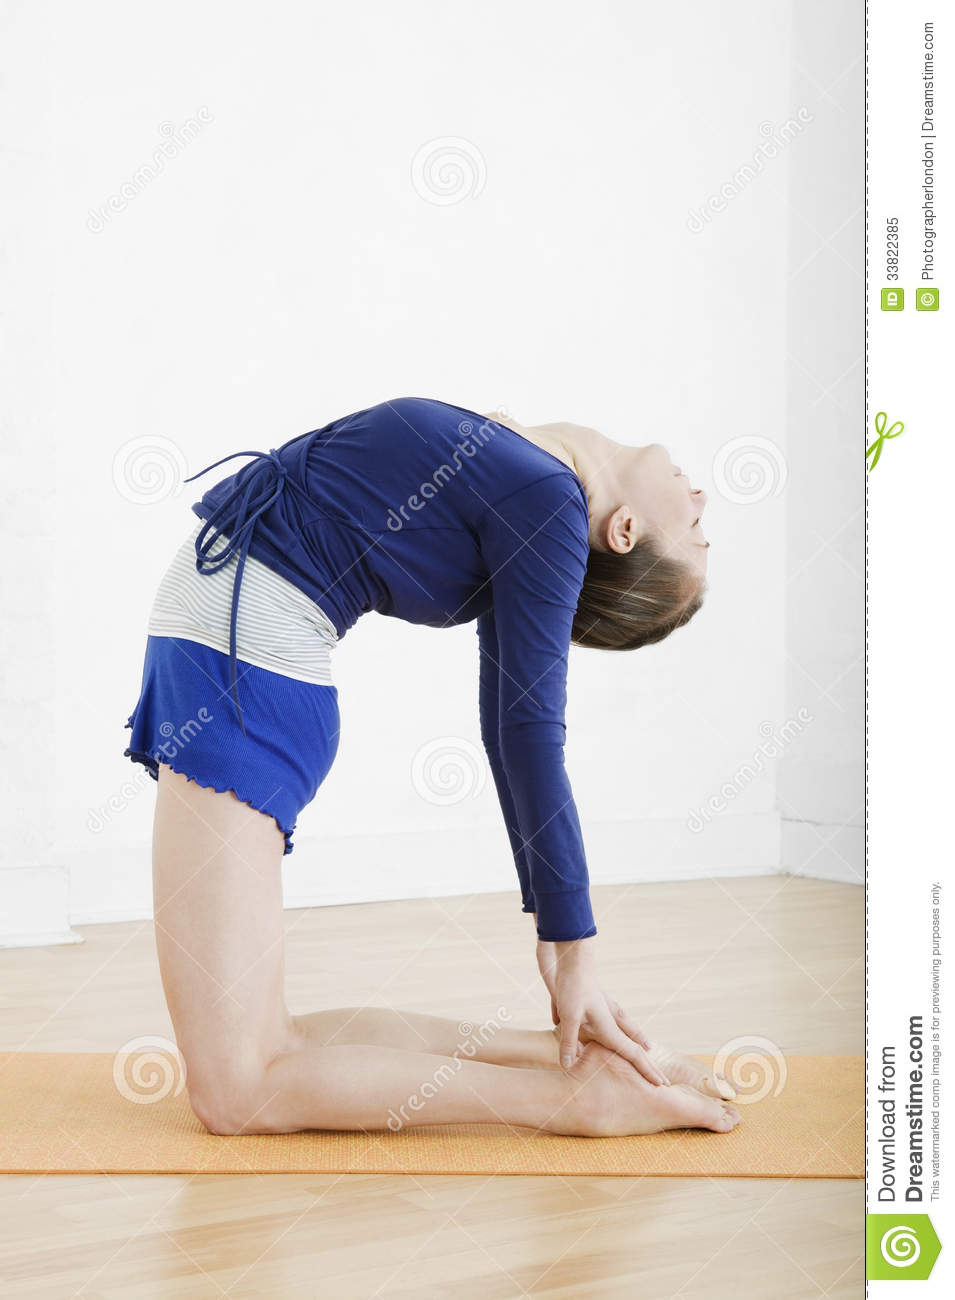 Woman In Camel Yoga Position At Gym Royalty Free Stock